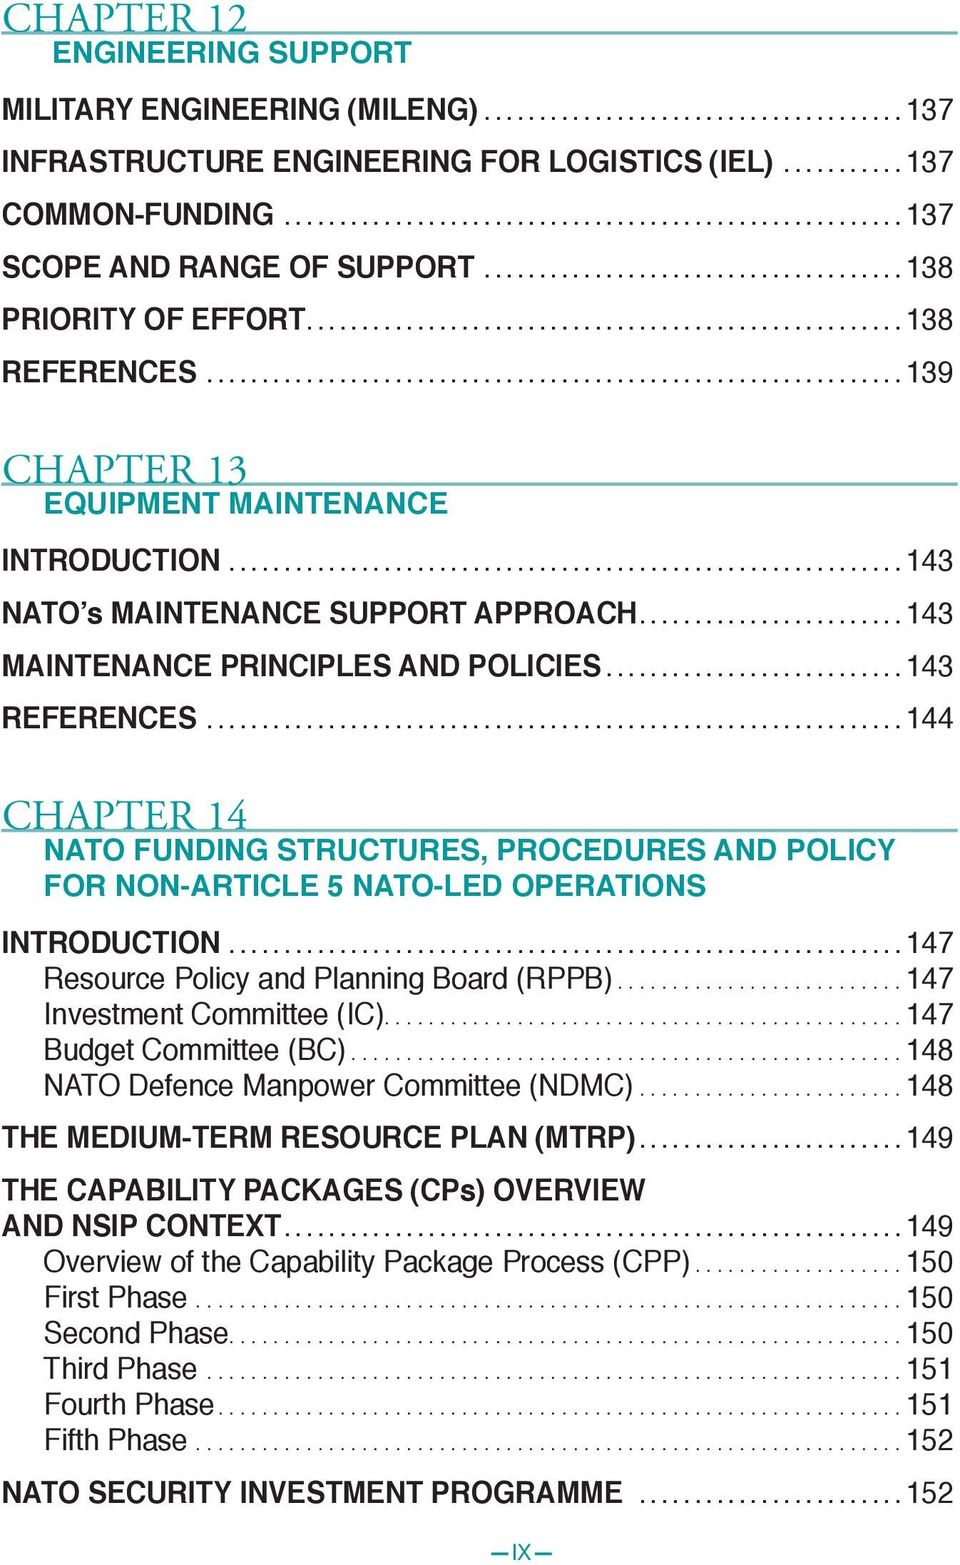 ..144 CHAPTER 14 NATO FUNDING STRUCTURES, PROCEDURES AND POLICY FOR NON-ARTICLE 5 NATO-LED OPERATIONS INTRODUCTION...147 Resource Policy and Planning Board (RPPB)...147 Investment Committee (IC).